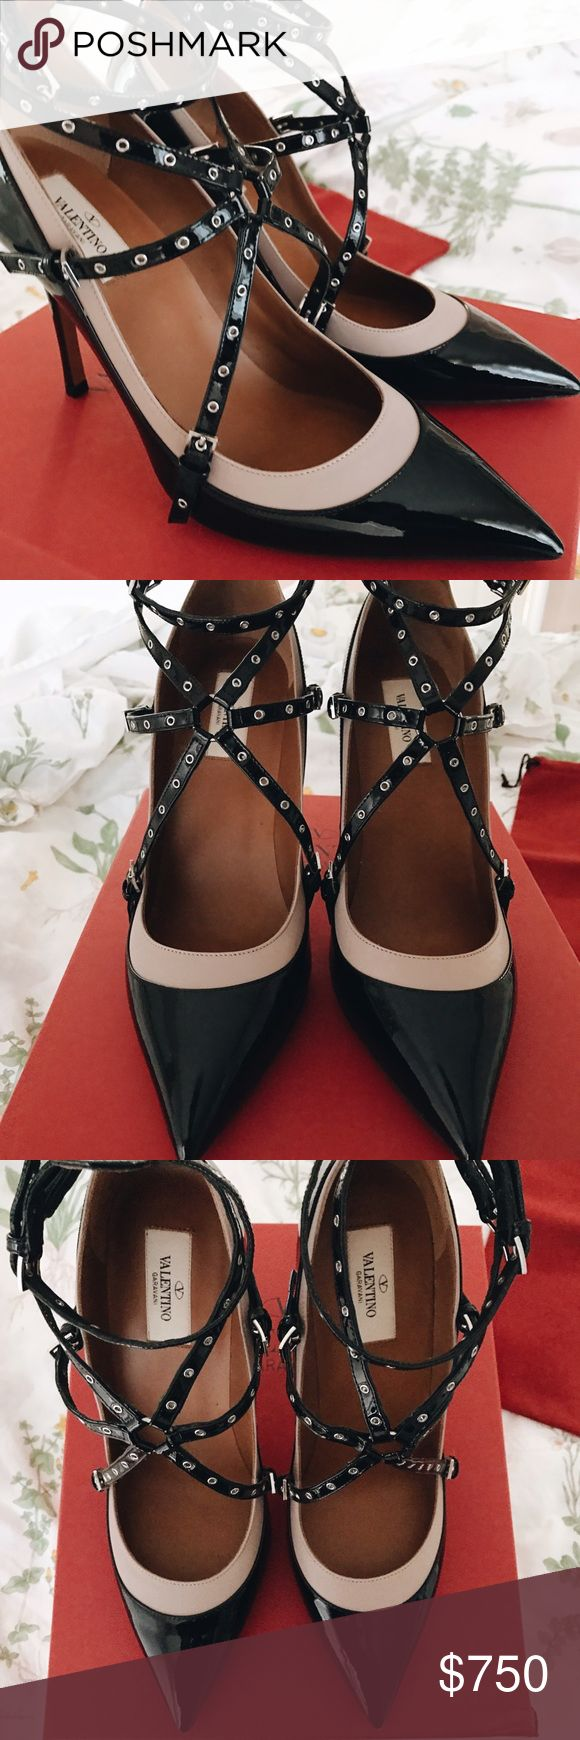 Valentino LoveLatch Stilettos!! Brand New!!! Brand New 100% Authentic! Comes with box/dustbag/authenticity tag! These are a 41 but this particular shoe runs very small!! Will best fit a 9.5/10 so listed as such!! Never Worn Valentino Shoes Heels